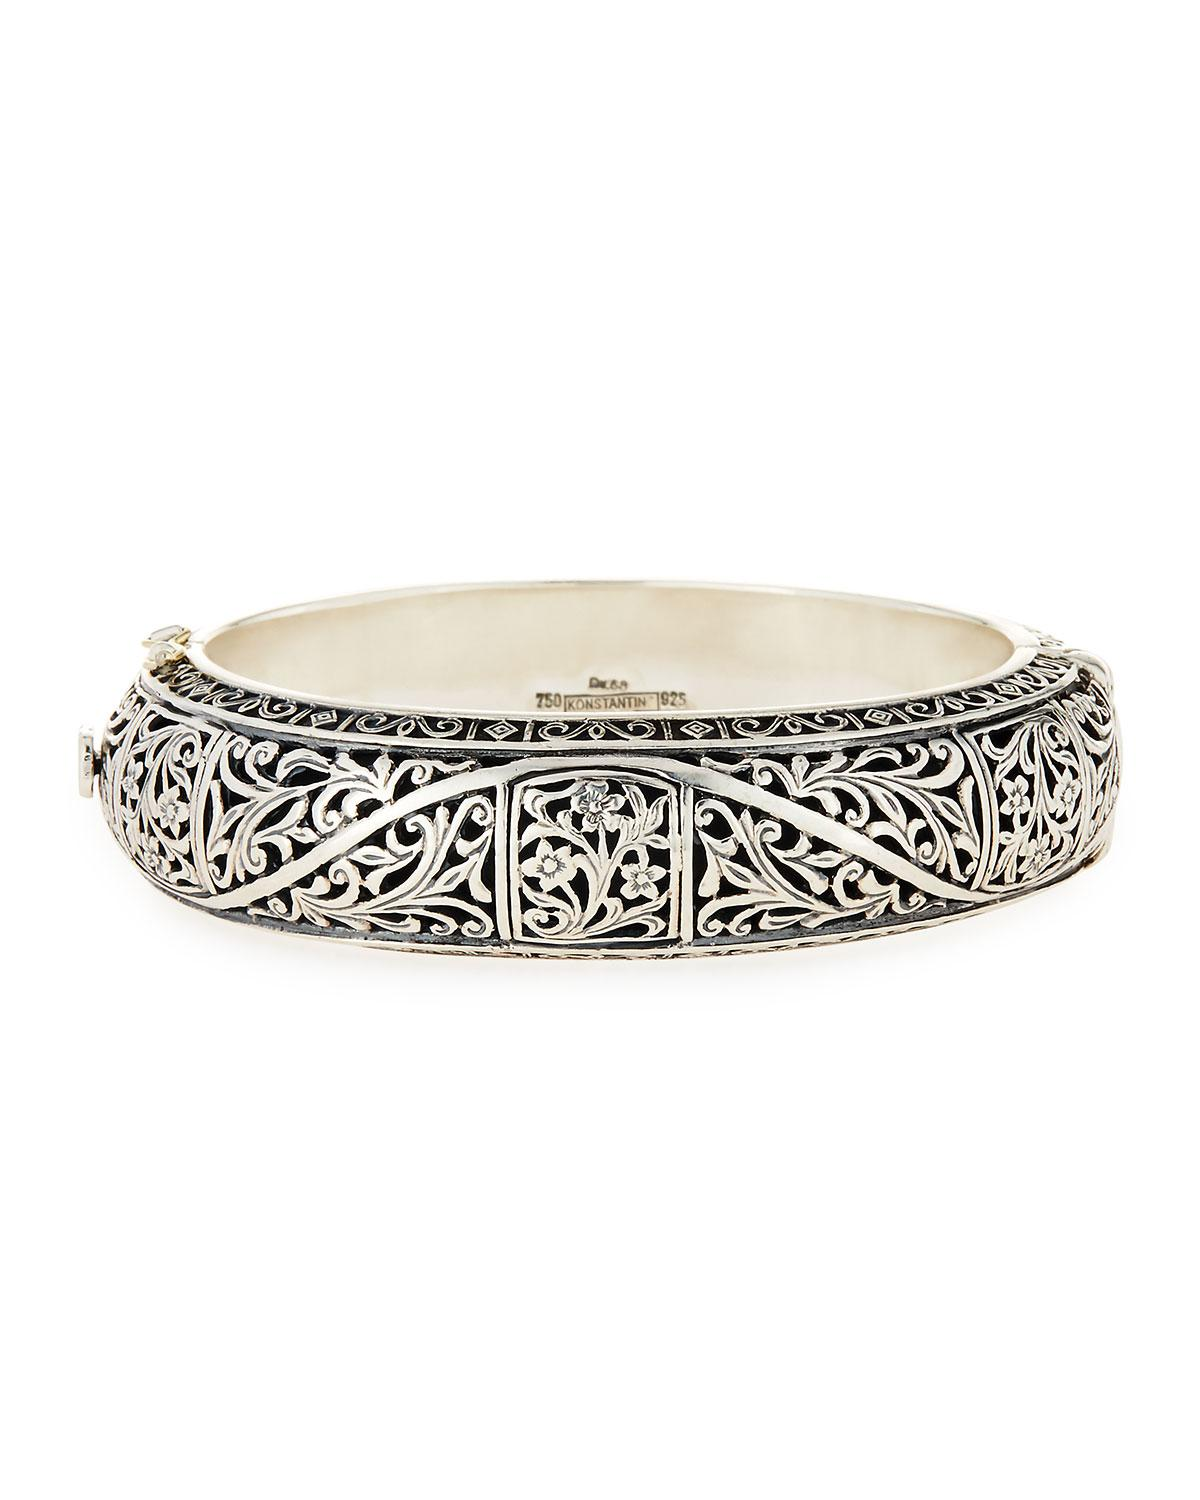 orpheus brand find bracelets sterling silver at men watches jewelry s hinged from slim online konstantino products bracelet and